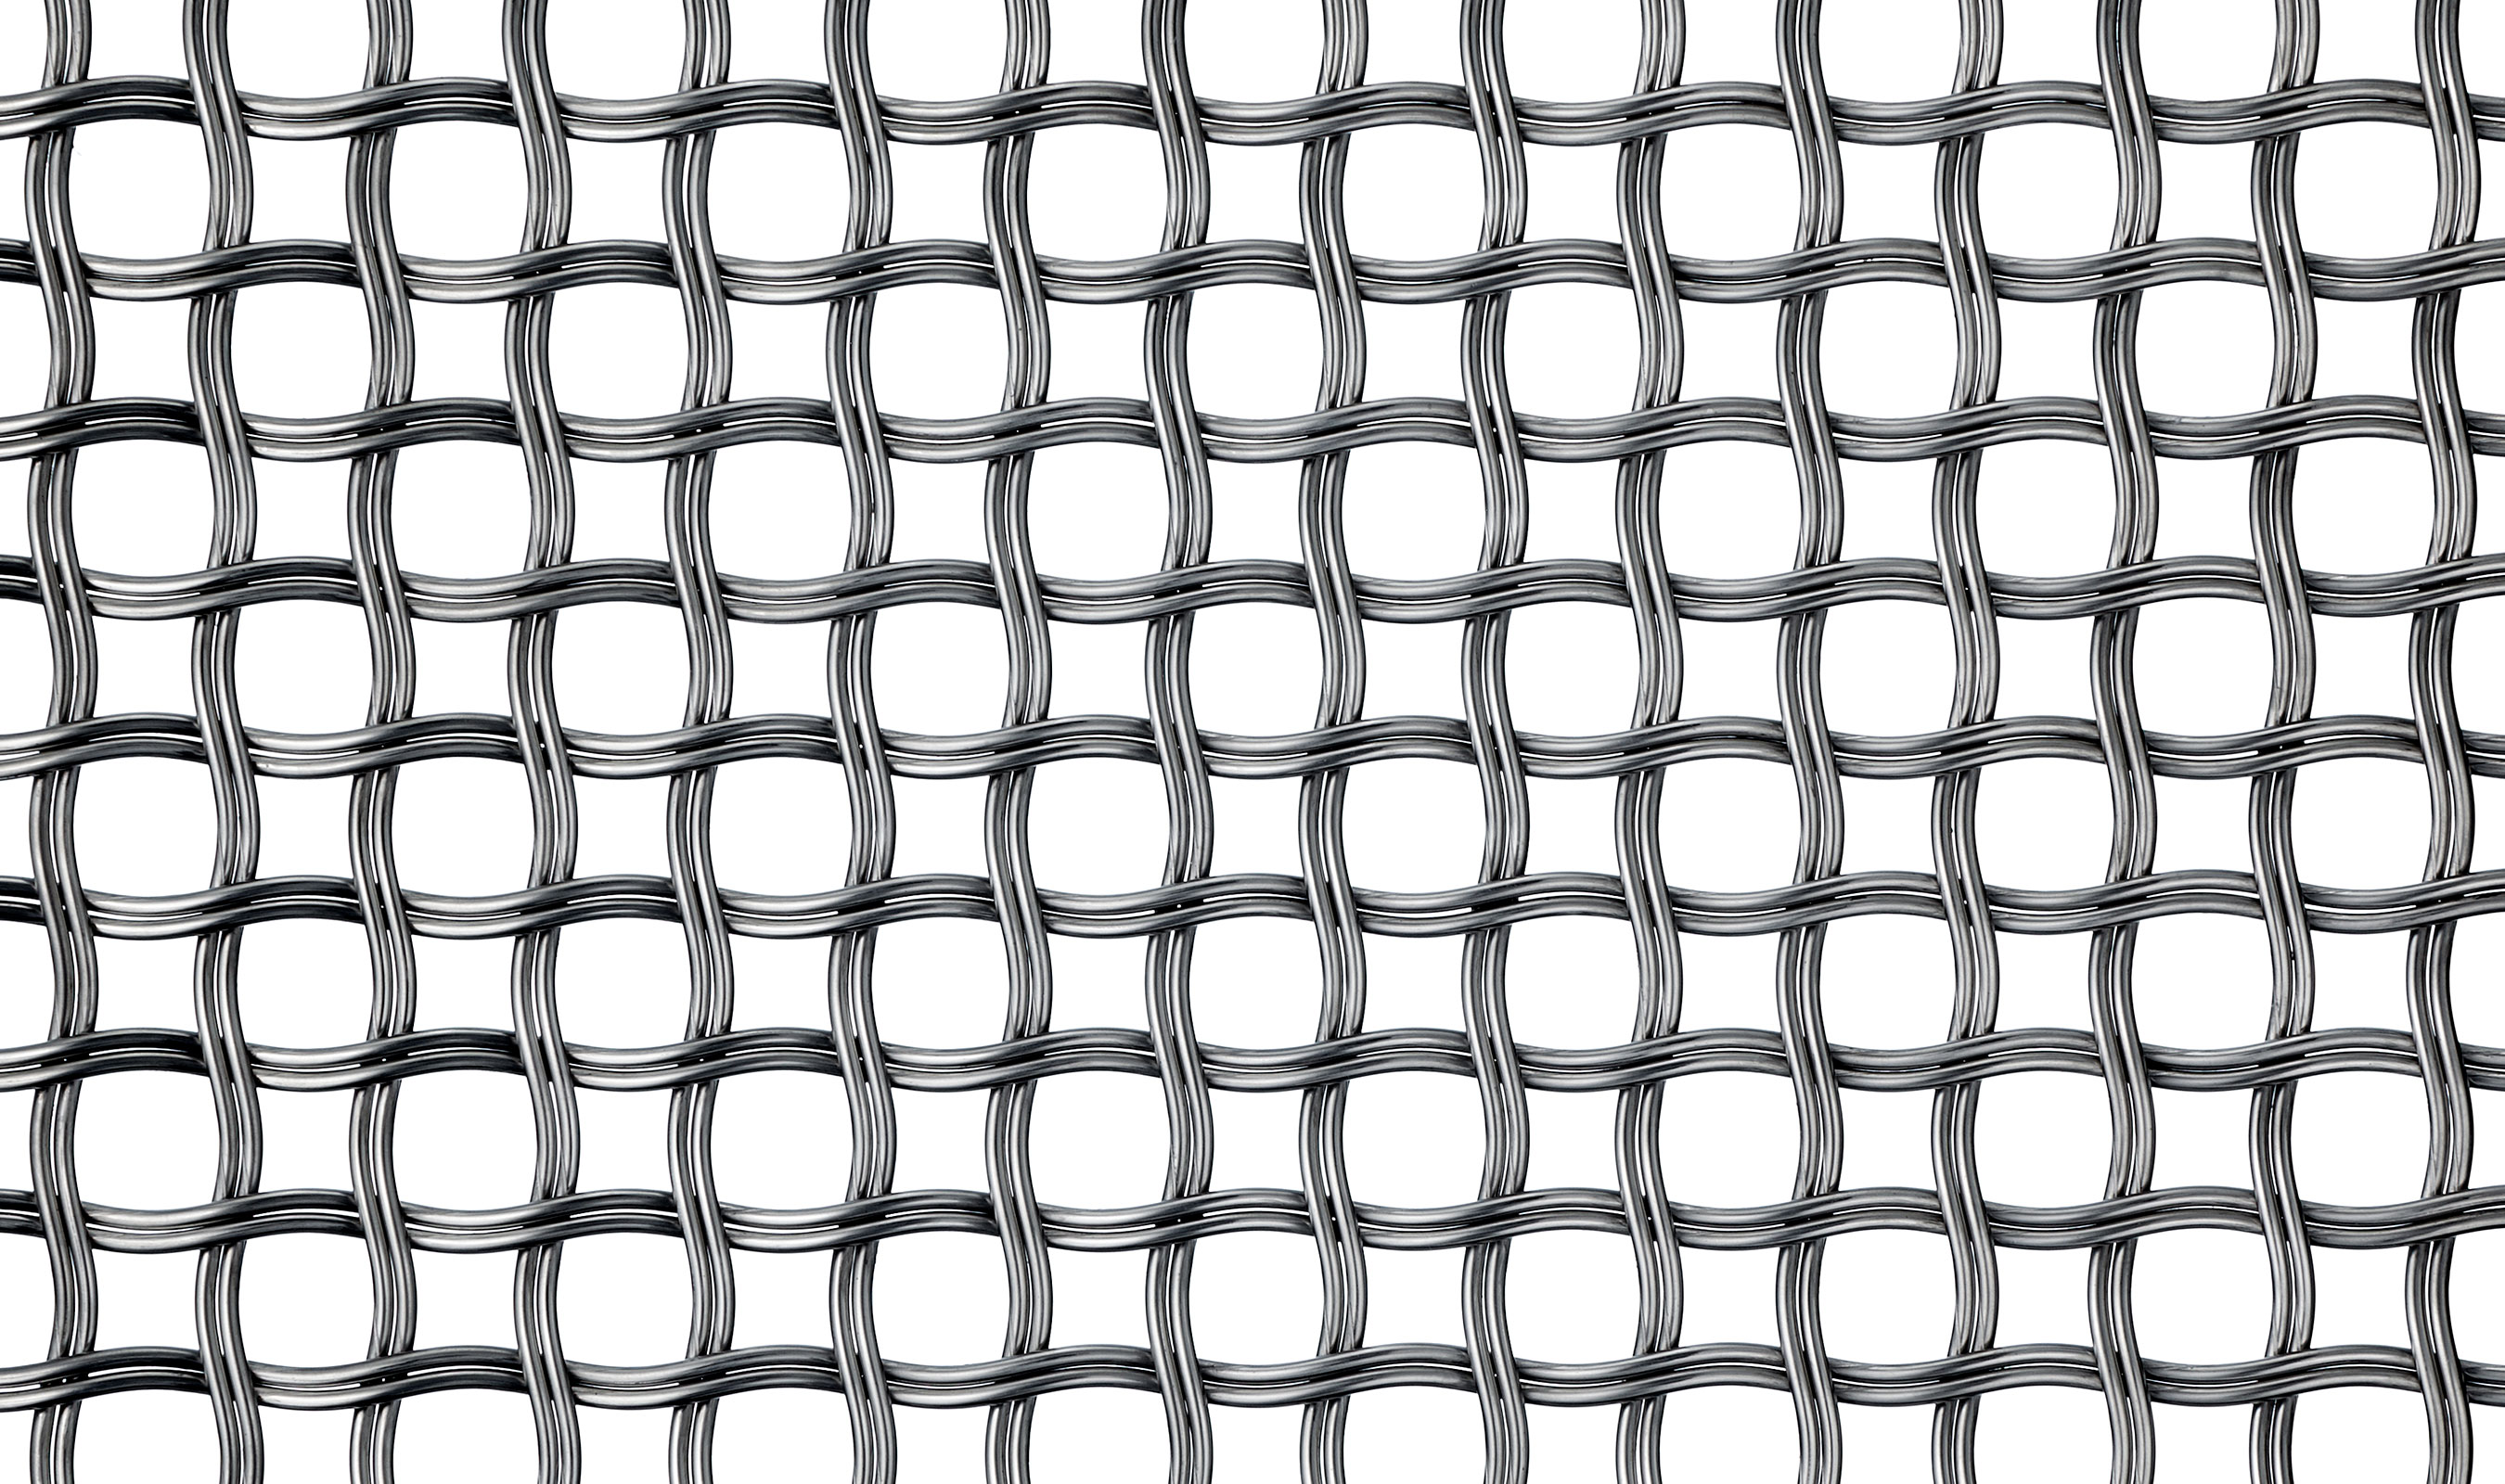 M22-80 in Stainless Woven Architectural Wire Mesh